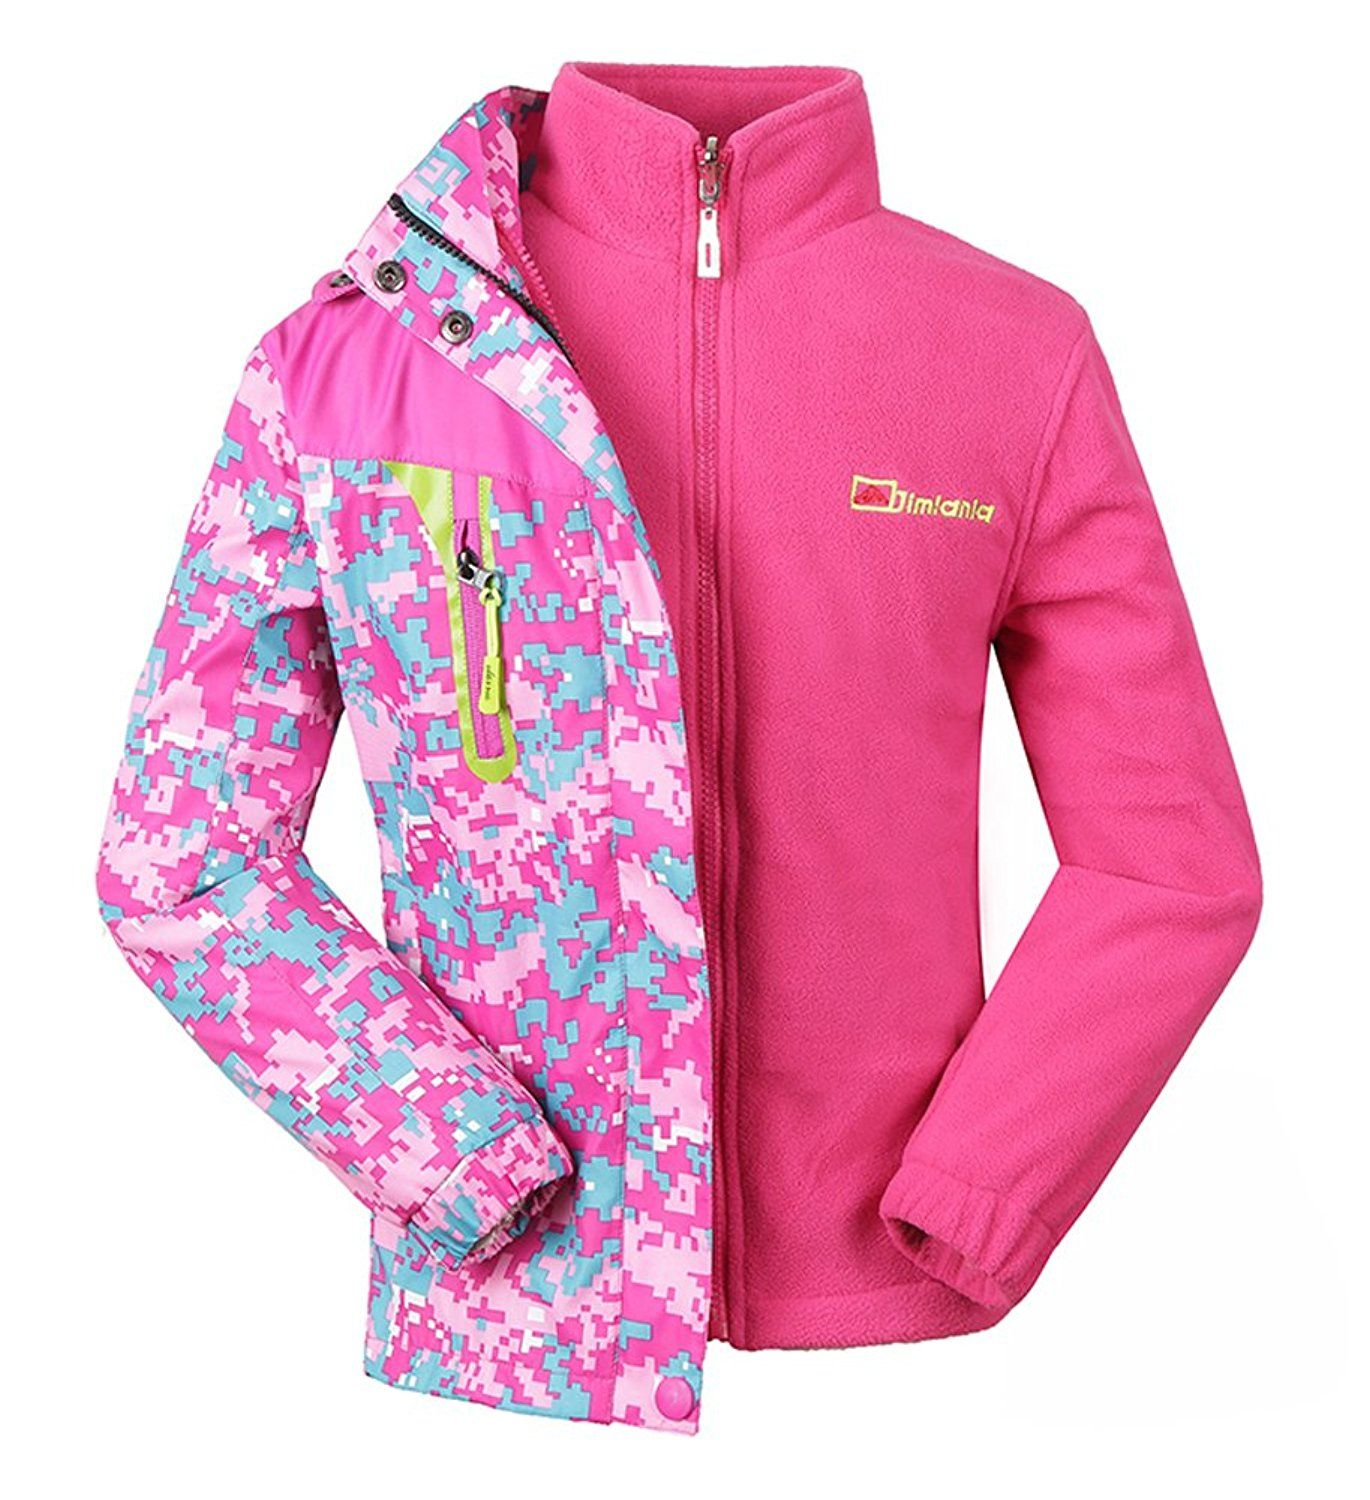 a9a3a93d6fdf Amazon.com  Roseate Girls 3-in-1 Jacket with Fleece Liner Outdoor ...